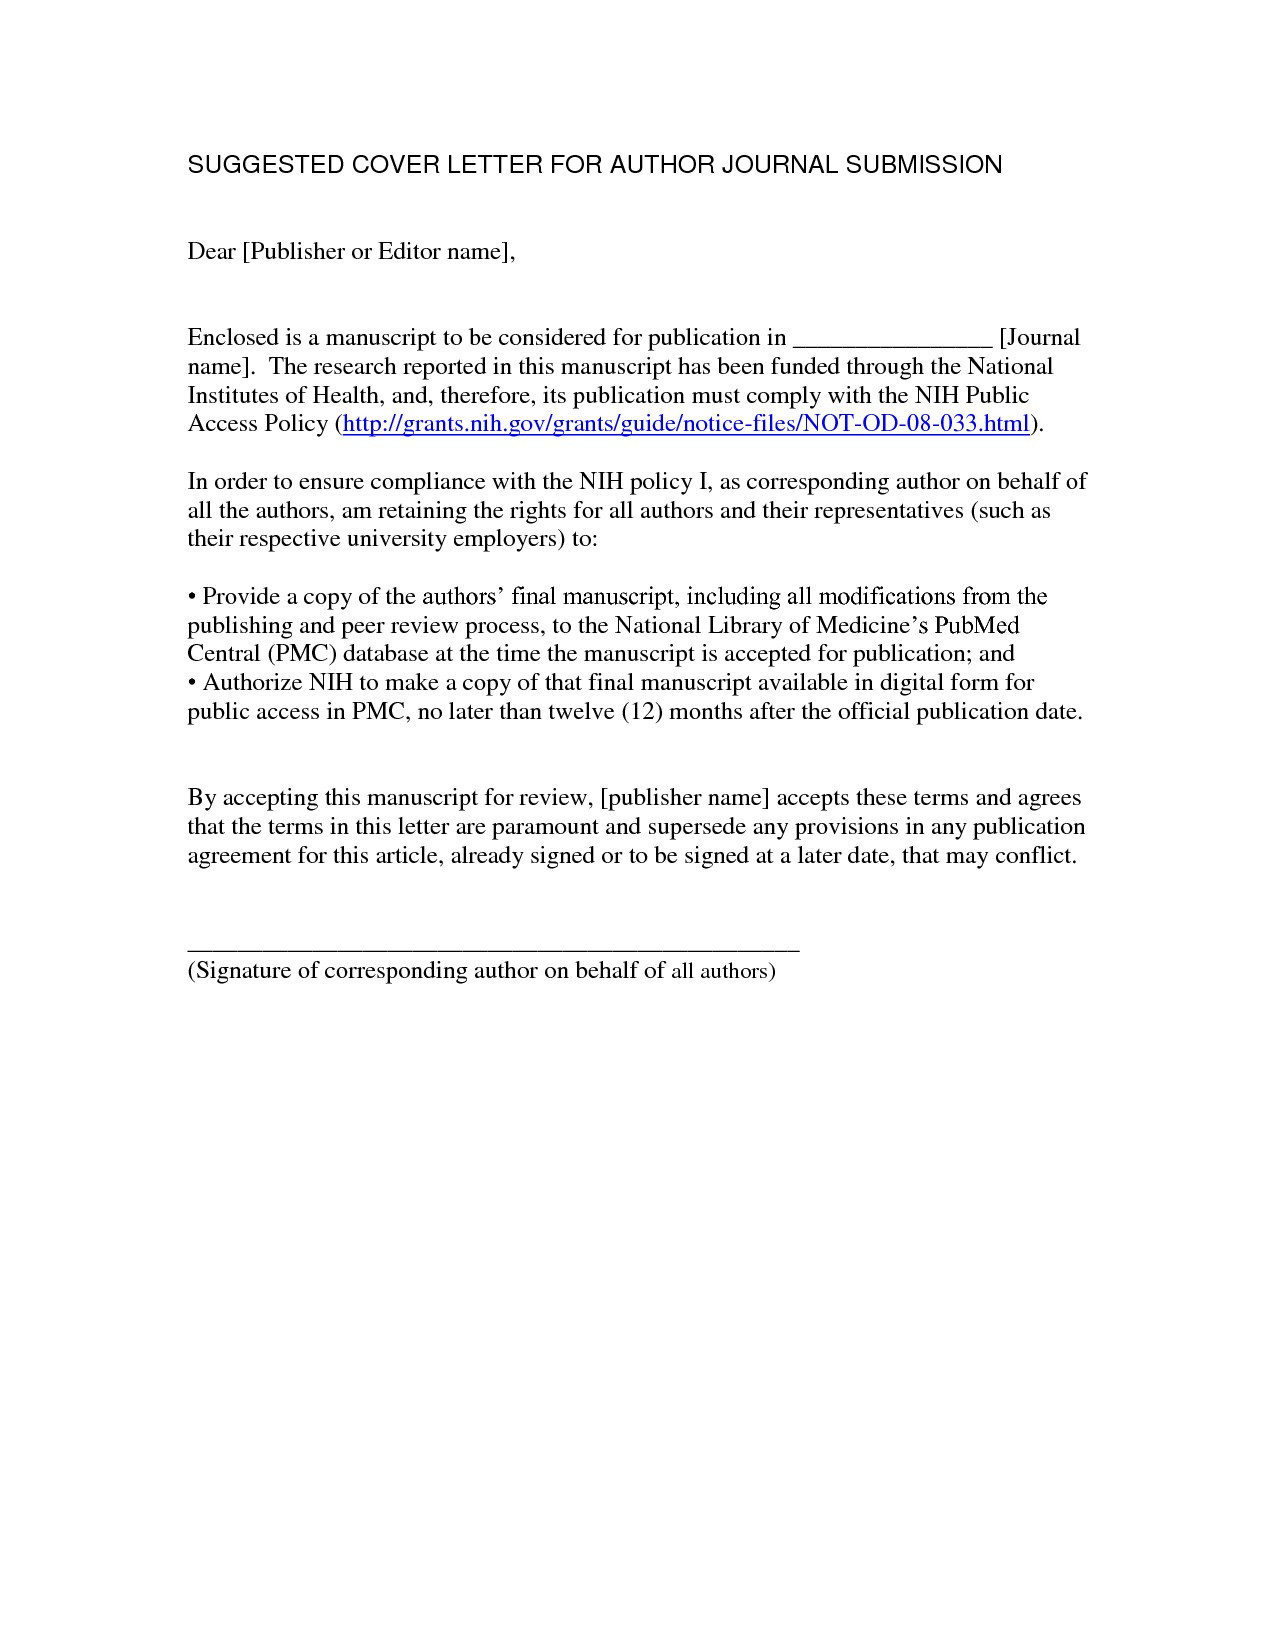 Letter Of Intent to Hire Template - Time and Materials Contract Template Unique Legal Template Letter